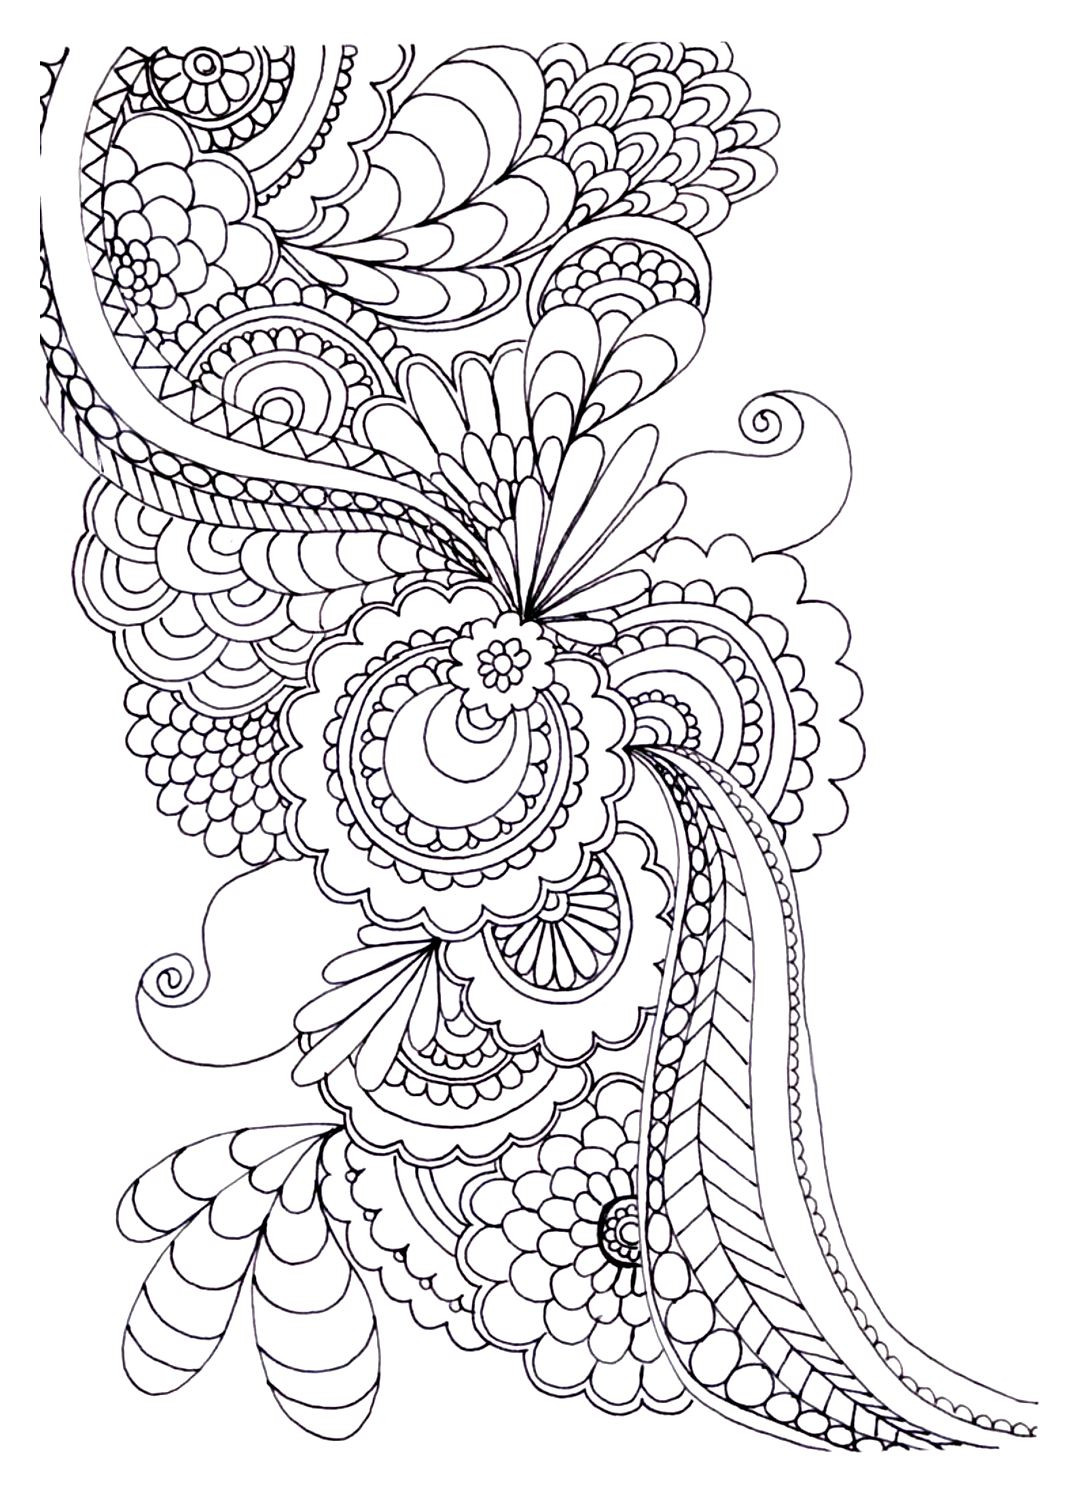 Free Coloring Pages Online Adults  20 Free Adult Colouring Pages The Organised Housewife